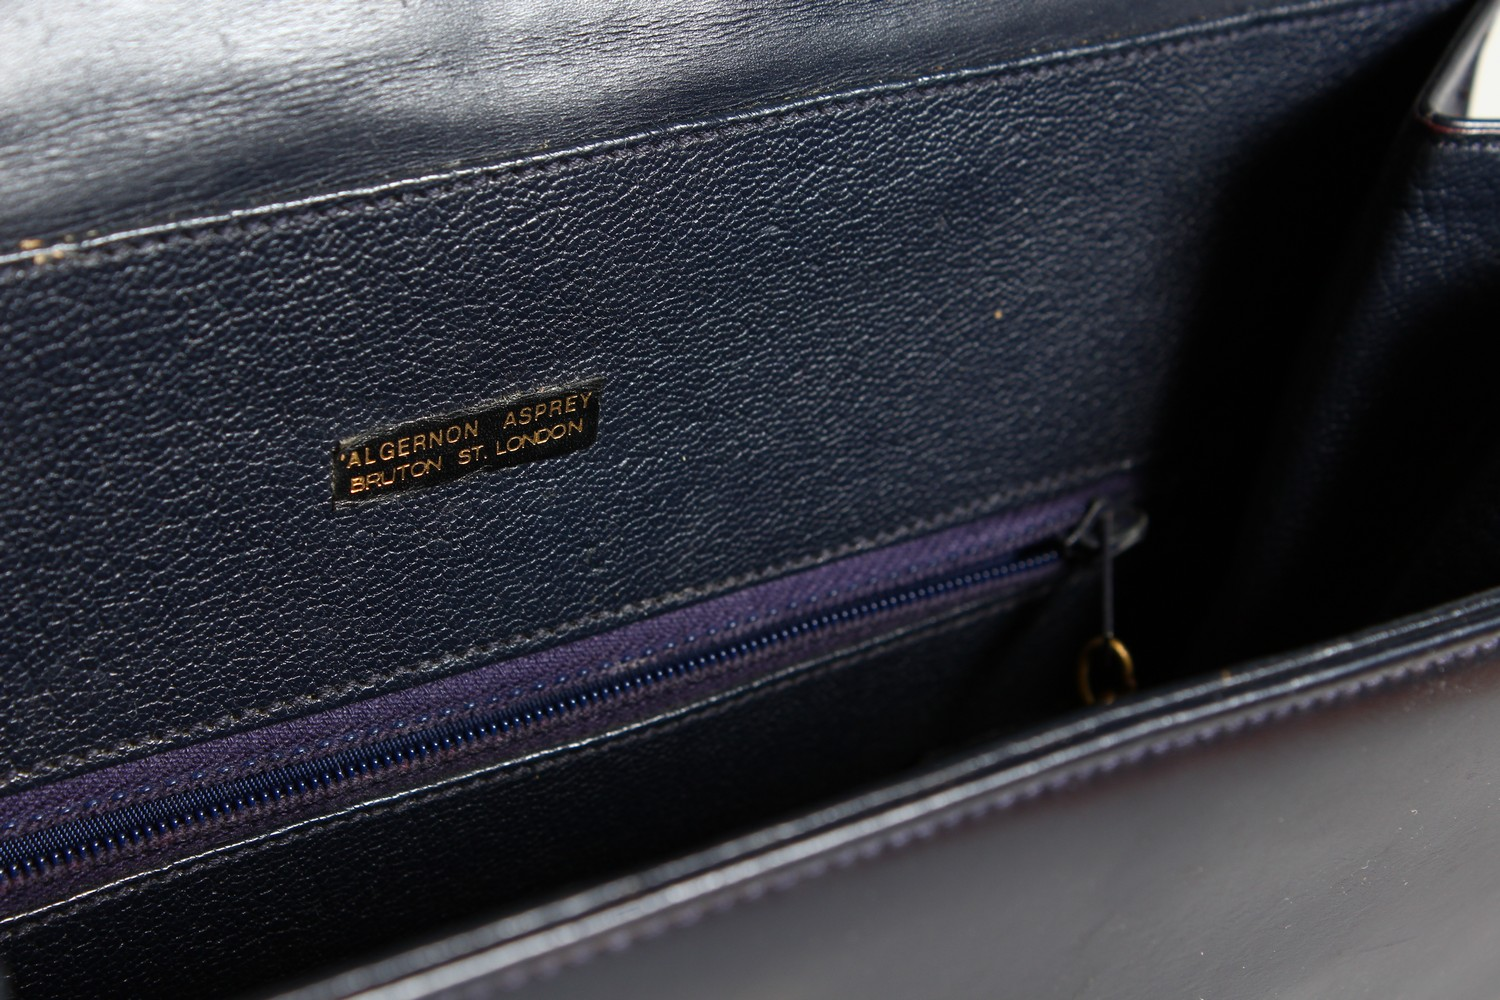 ALGERNON ASPREY, a ladies black leather handbag, and two other bags. - Image 14 of 16